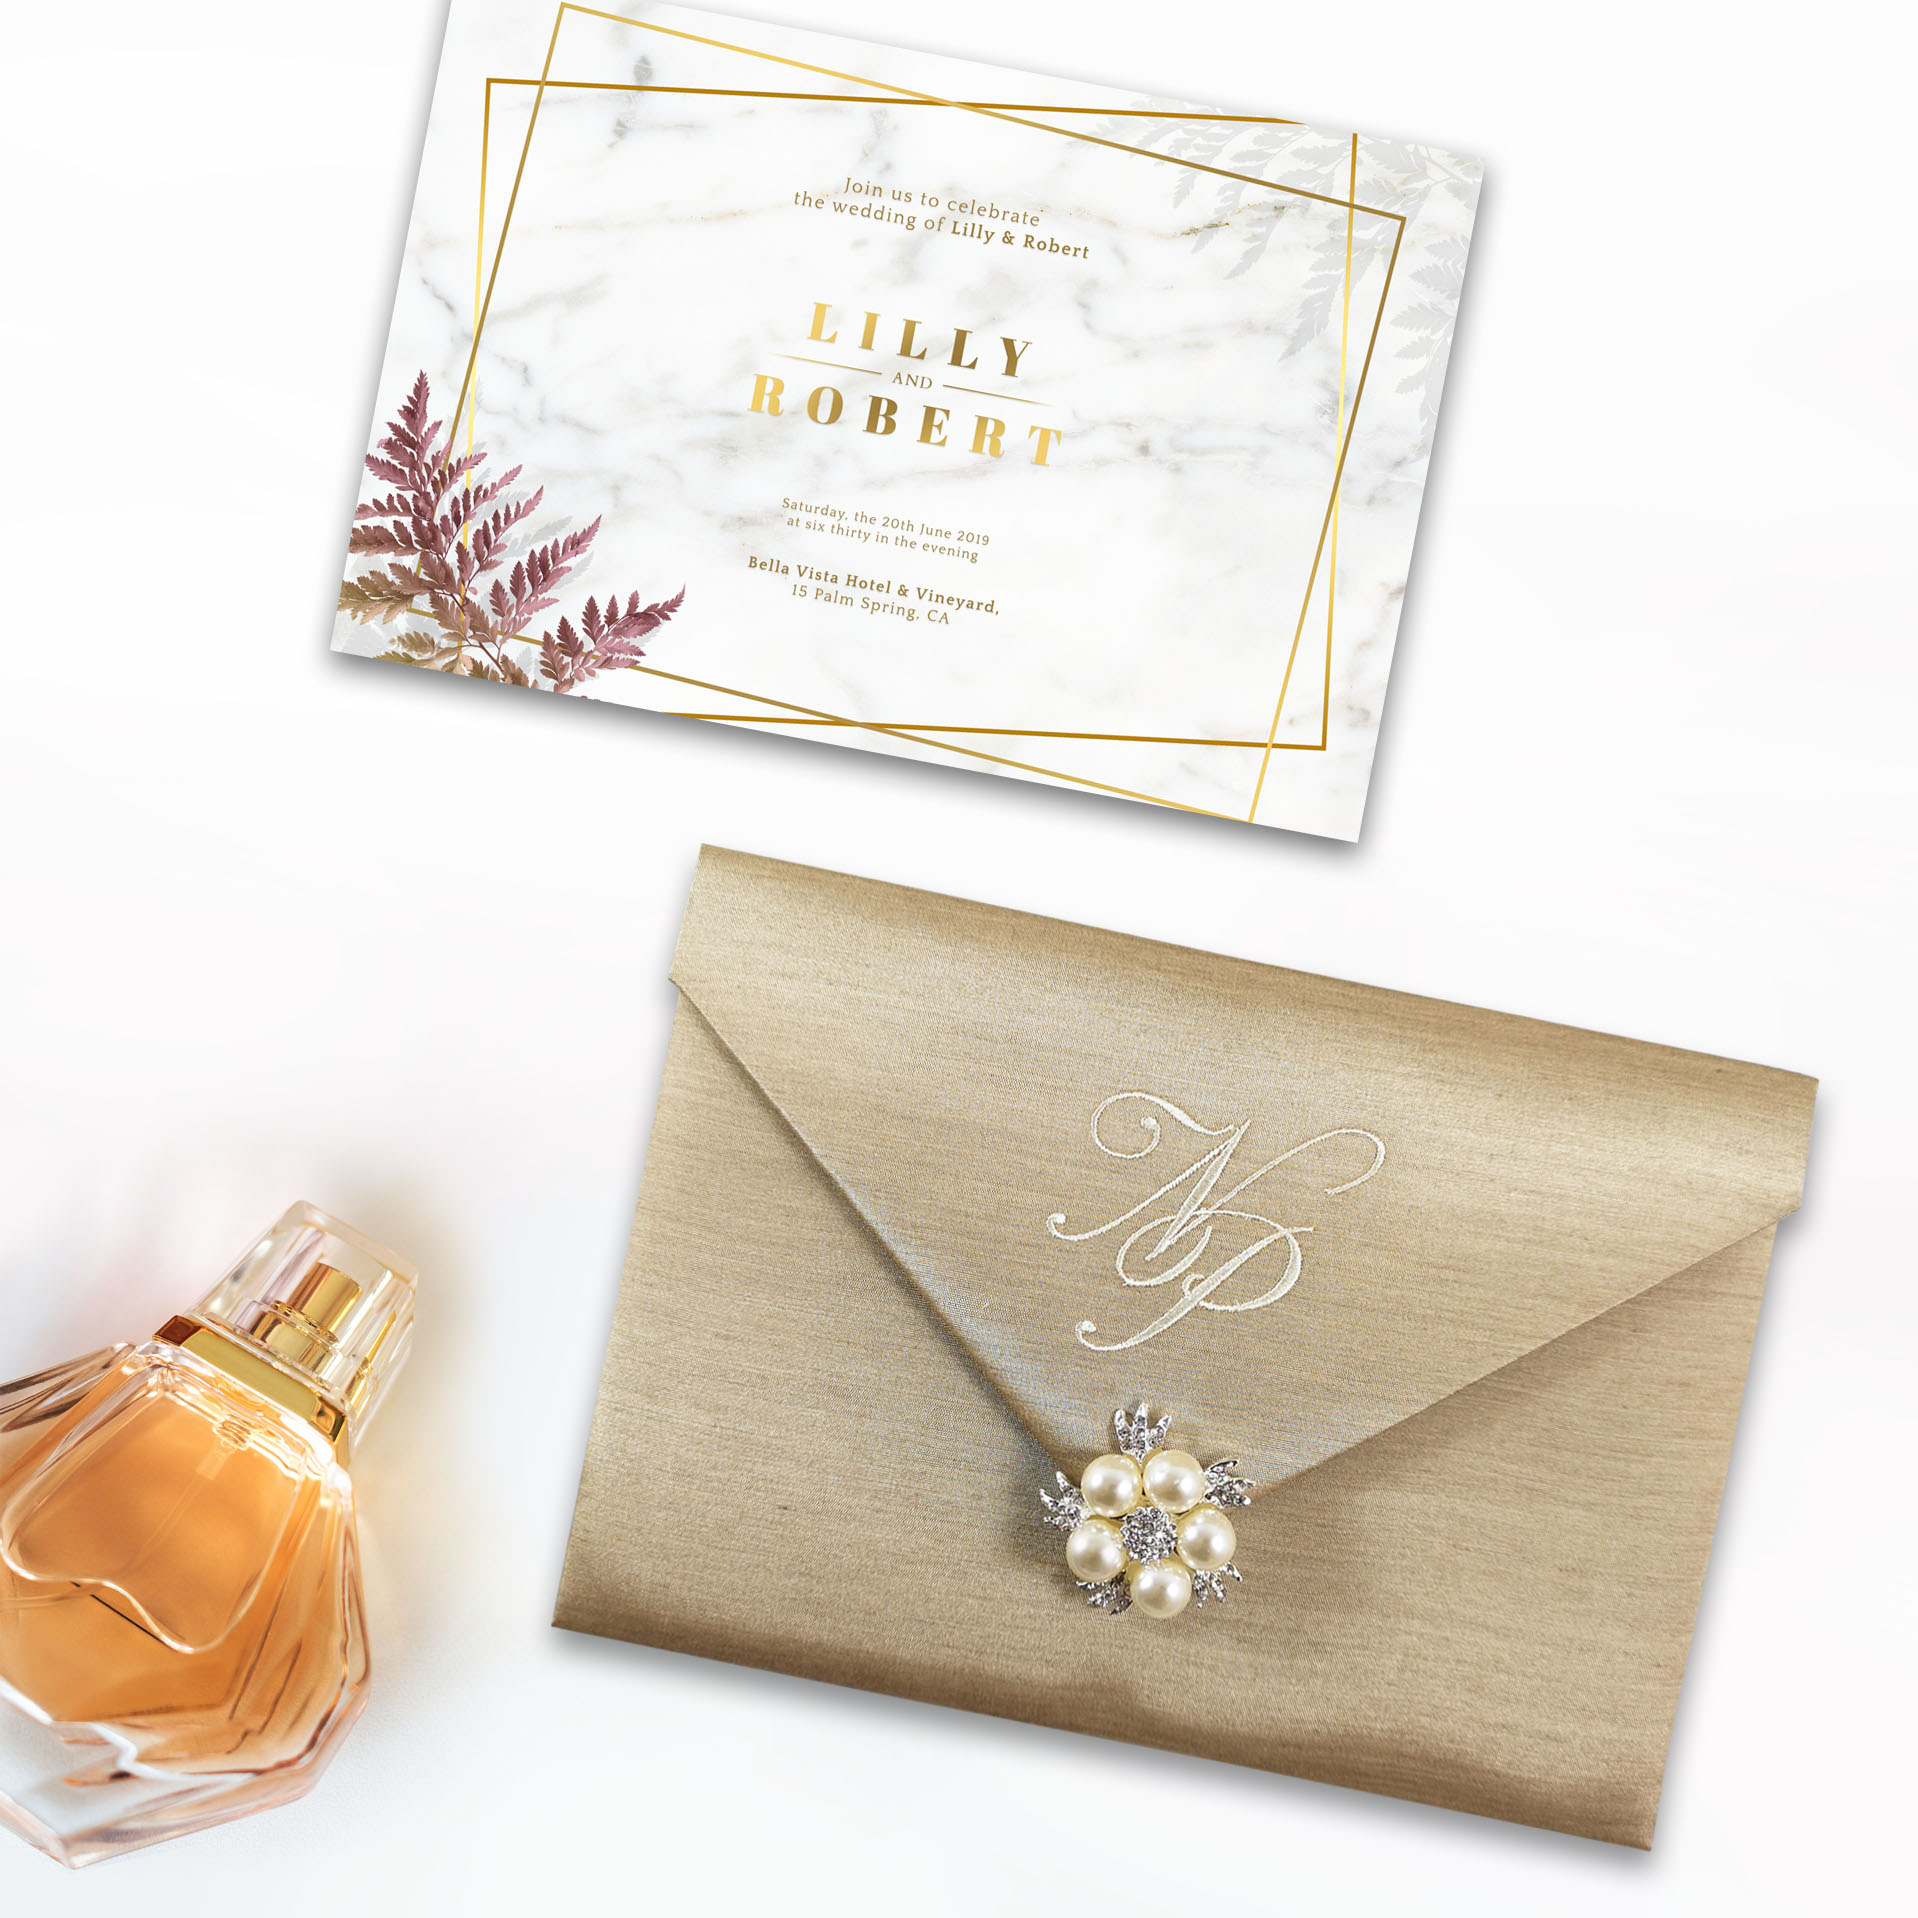 Champagne color monogram silk envelope for inviattion cards recently designed by Dennis Wisser